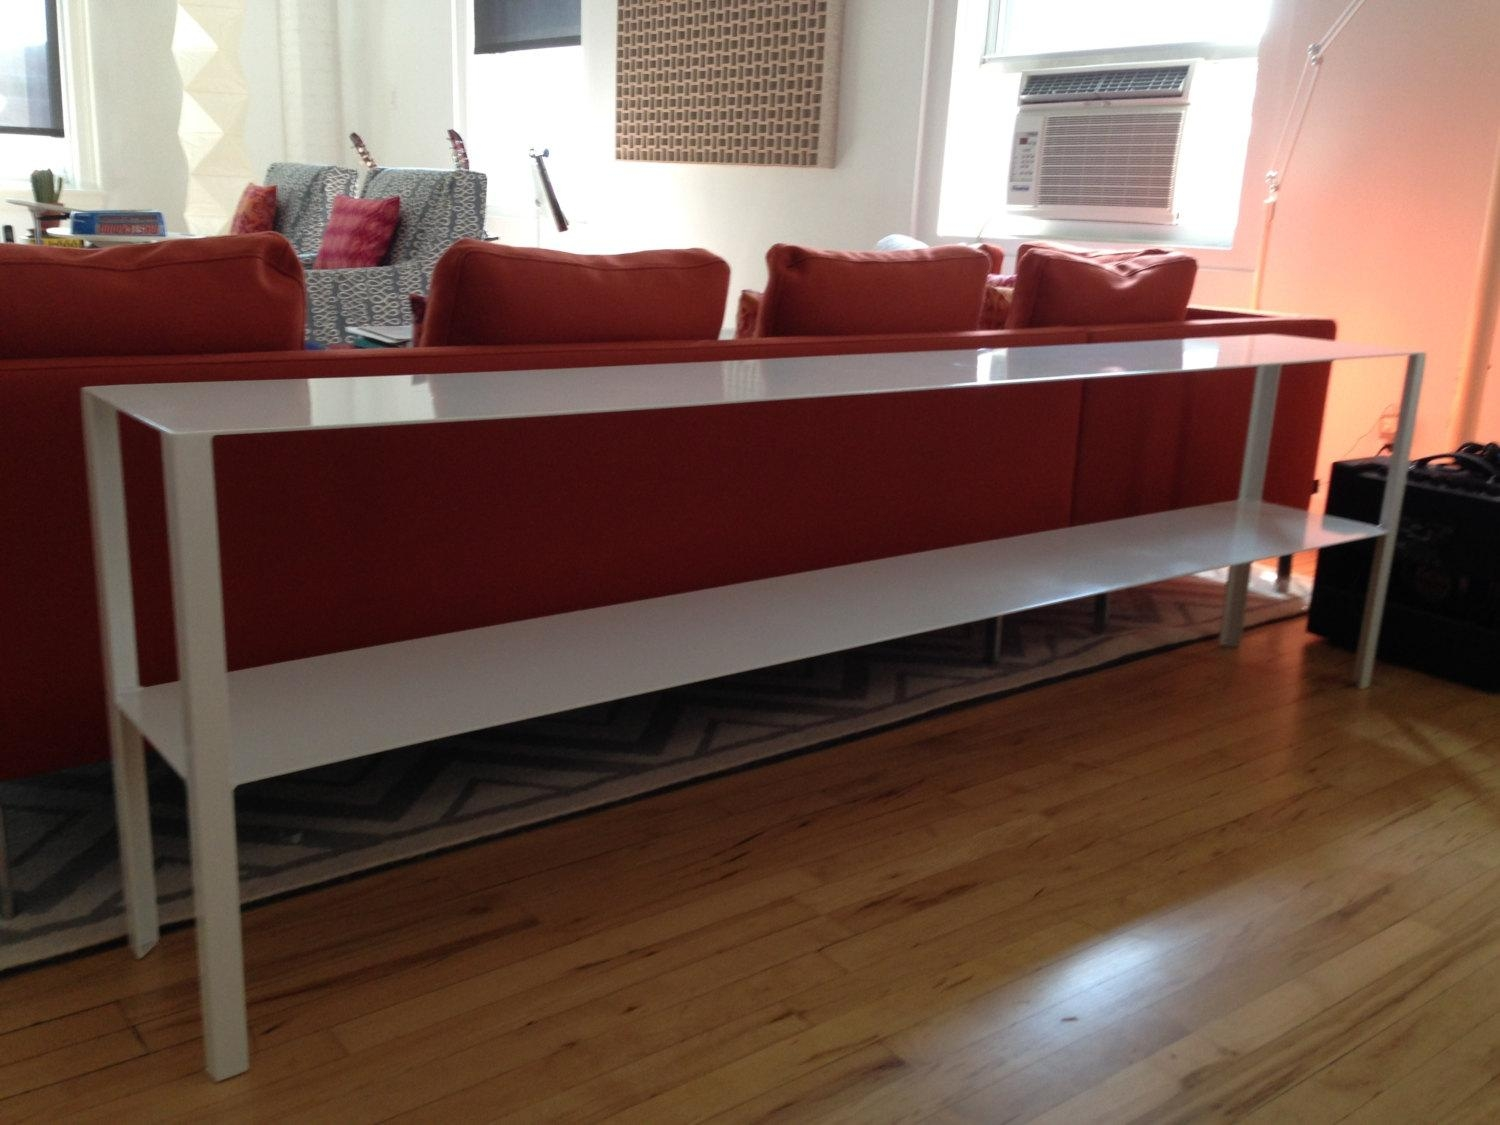 Elegant Narrow Sofa Table 33 In Modern Sofa Inspiration With Throughout Narrow Sofa Tables (View 16 of 23)